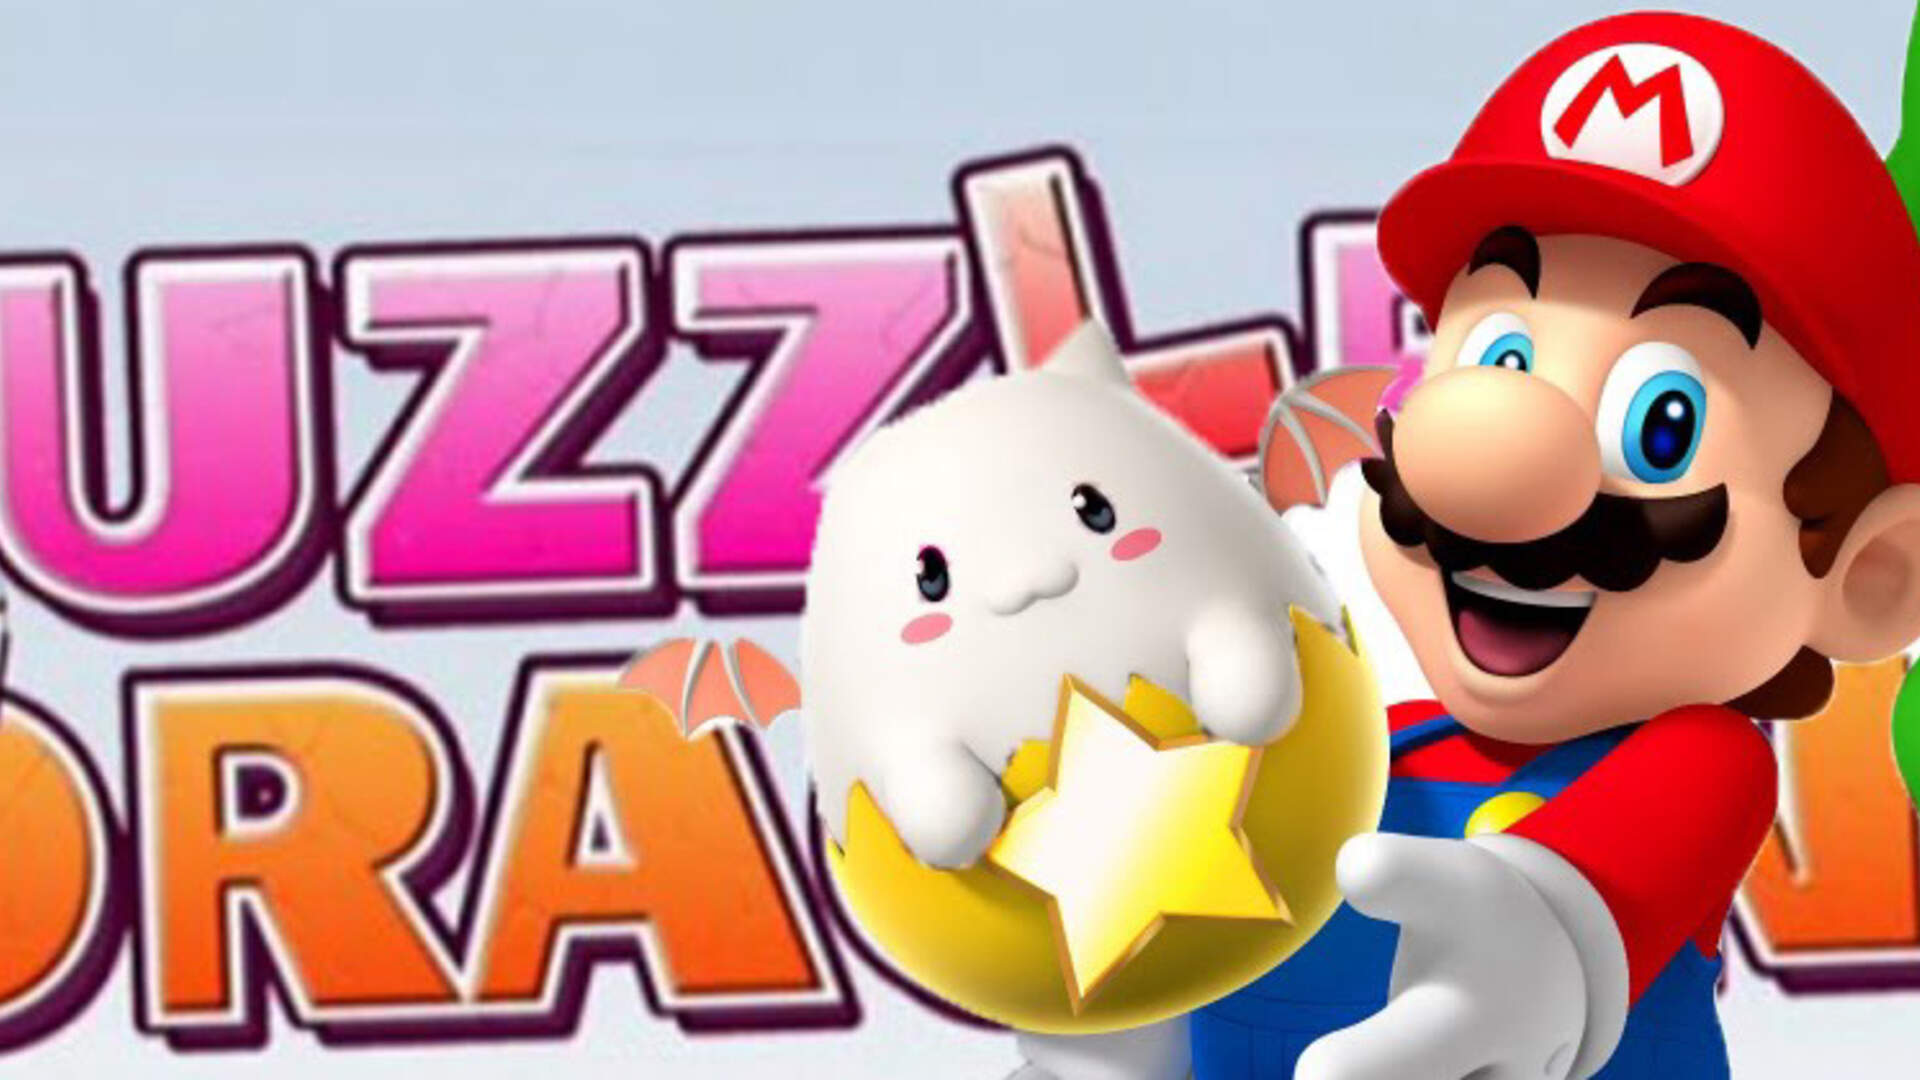 Mixing Puzzle & Dragons and Super Mario Bros. Makes More Sense Than You Might Think